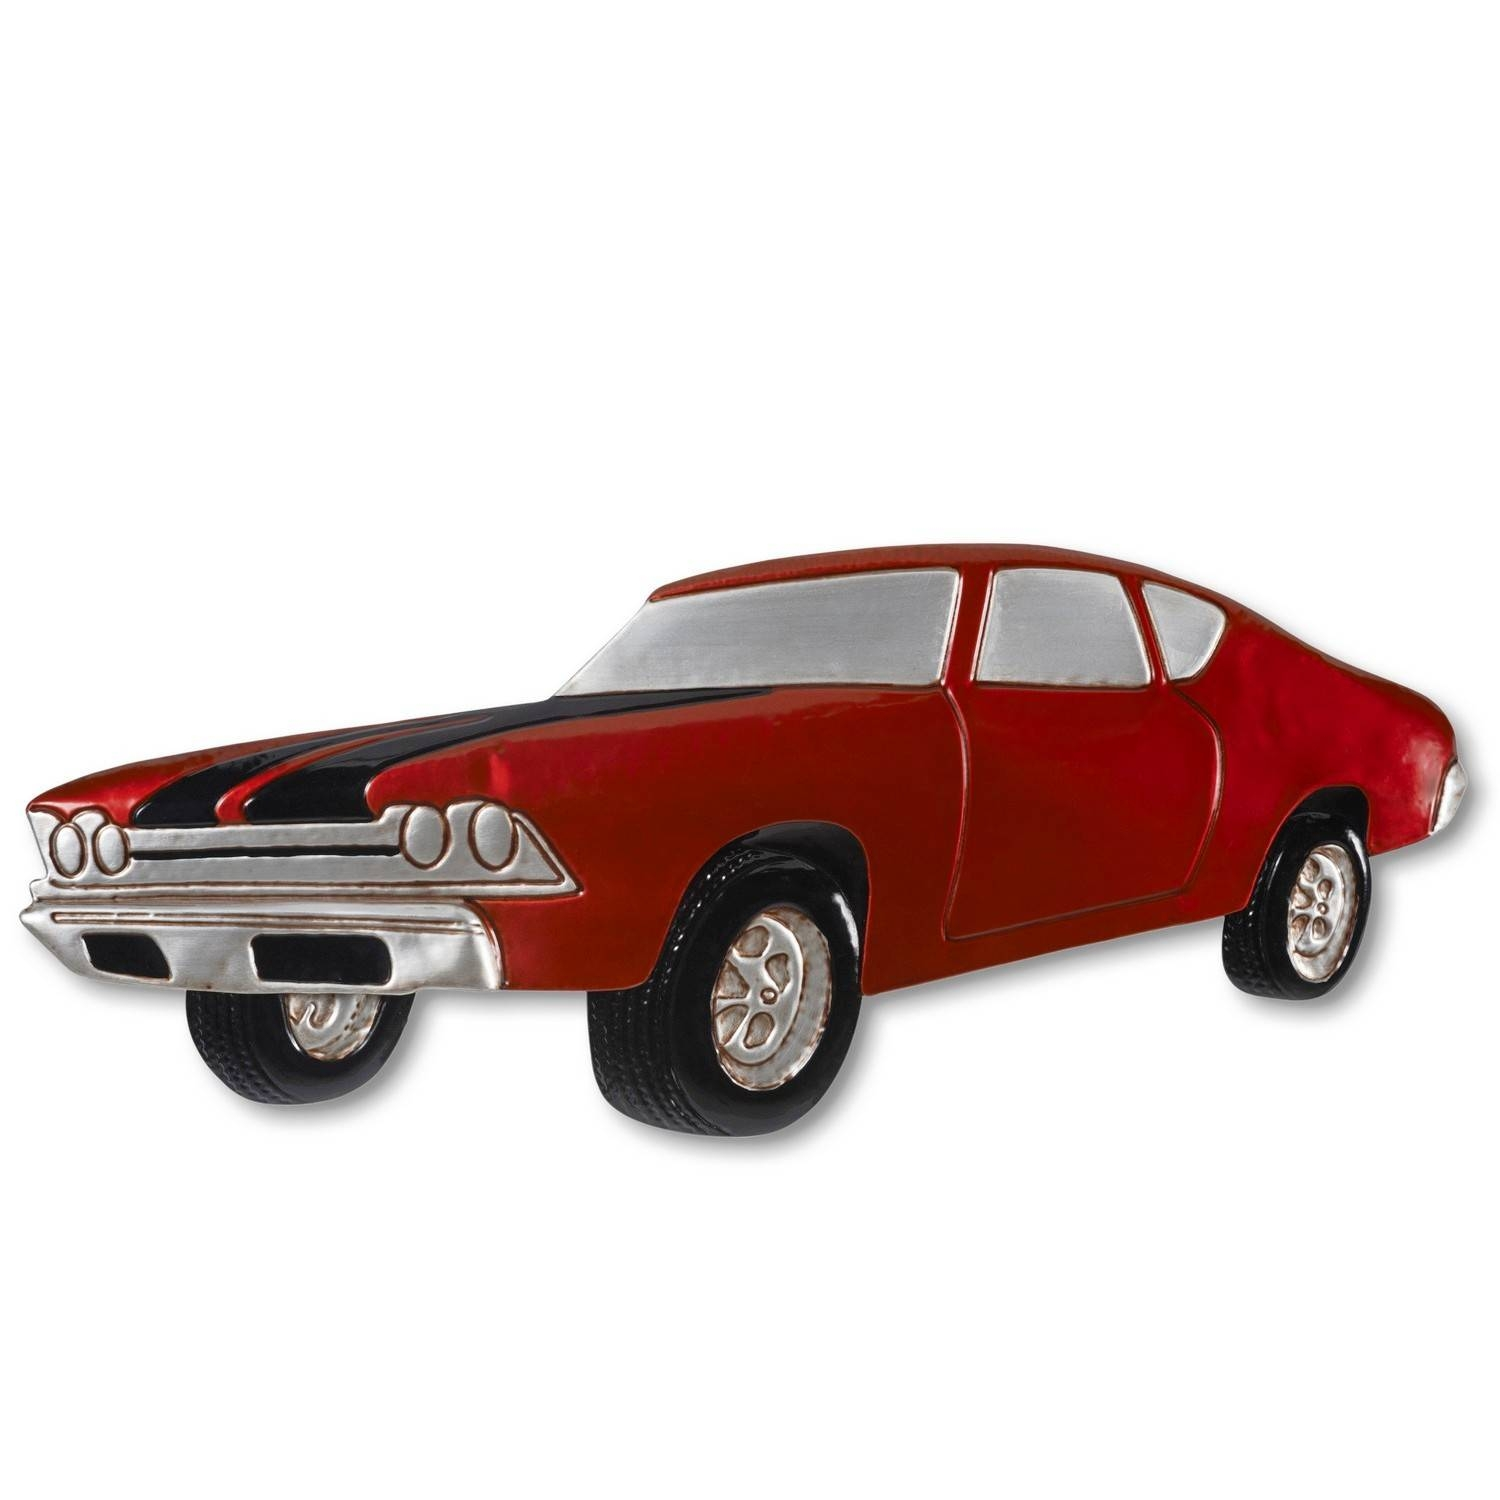 Metal Wall Art Red Vintage Car | Decorcave In Most Recent Car Metal Wall Art (View 9 of 20)